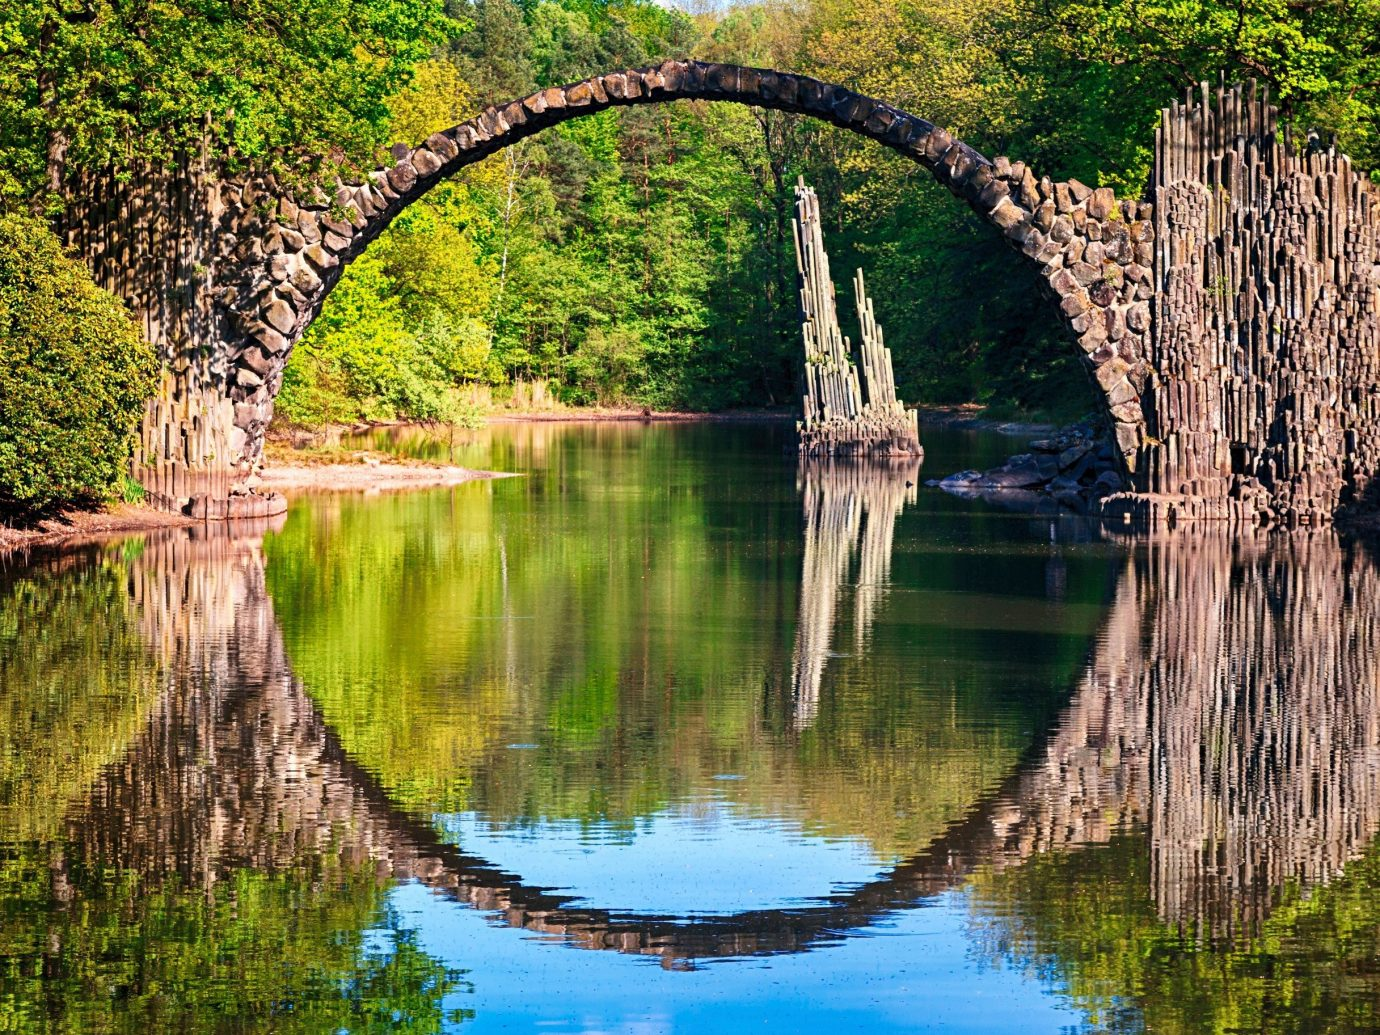 Trip Ideas tree outdoor grass water reflection River body of water bridge Lake woody plant flower pond Nature waterway autumn surrounded wetland stream park way arch wooded